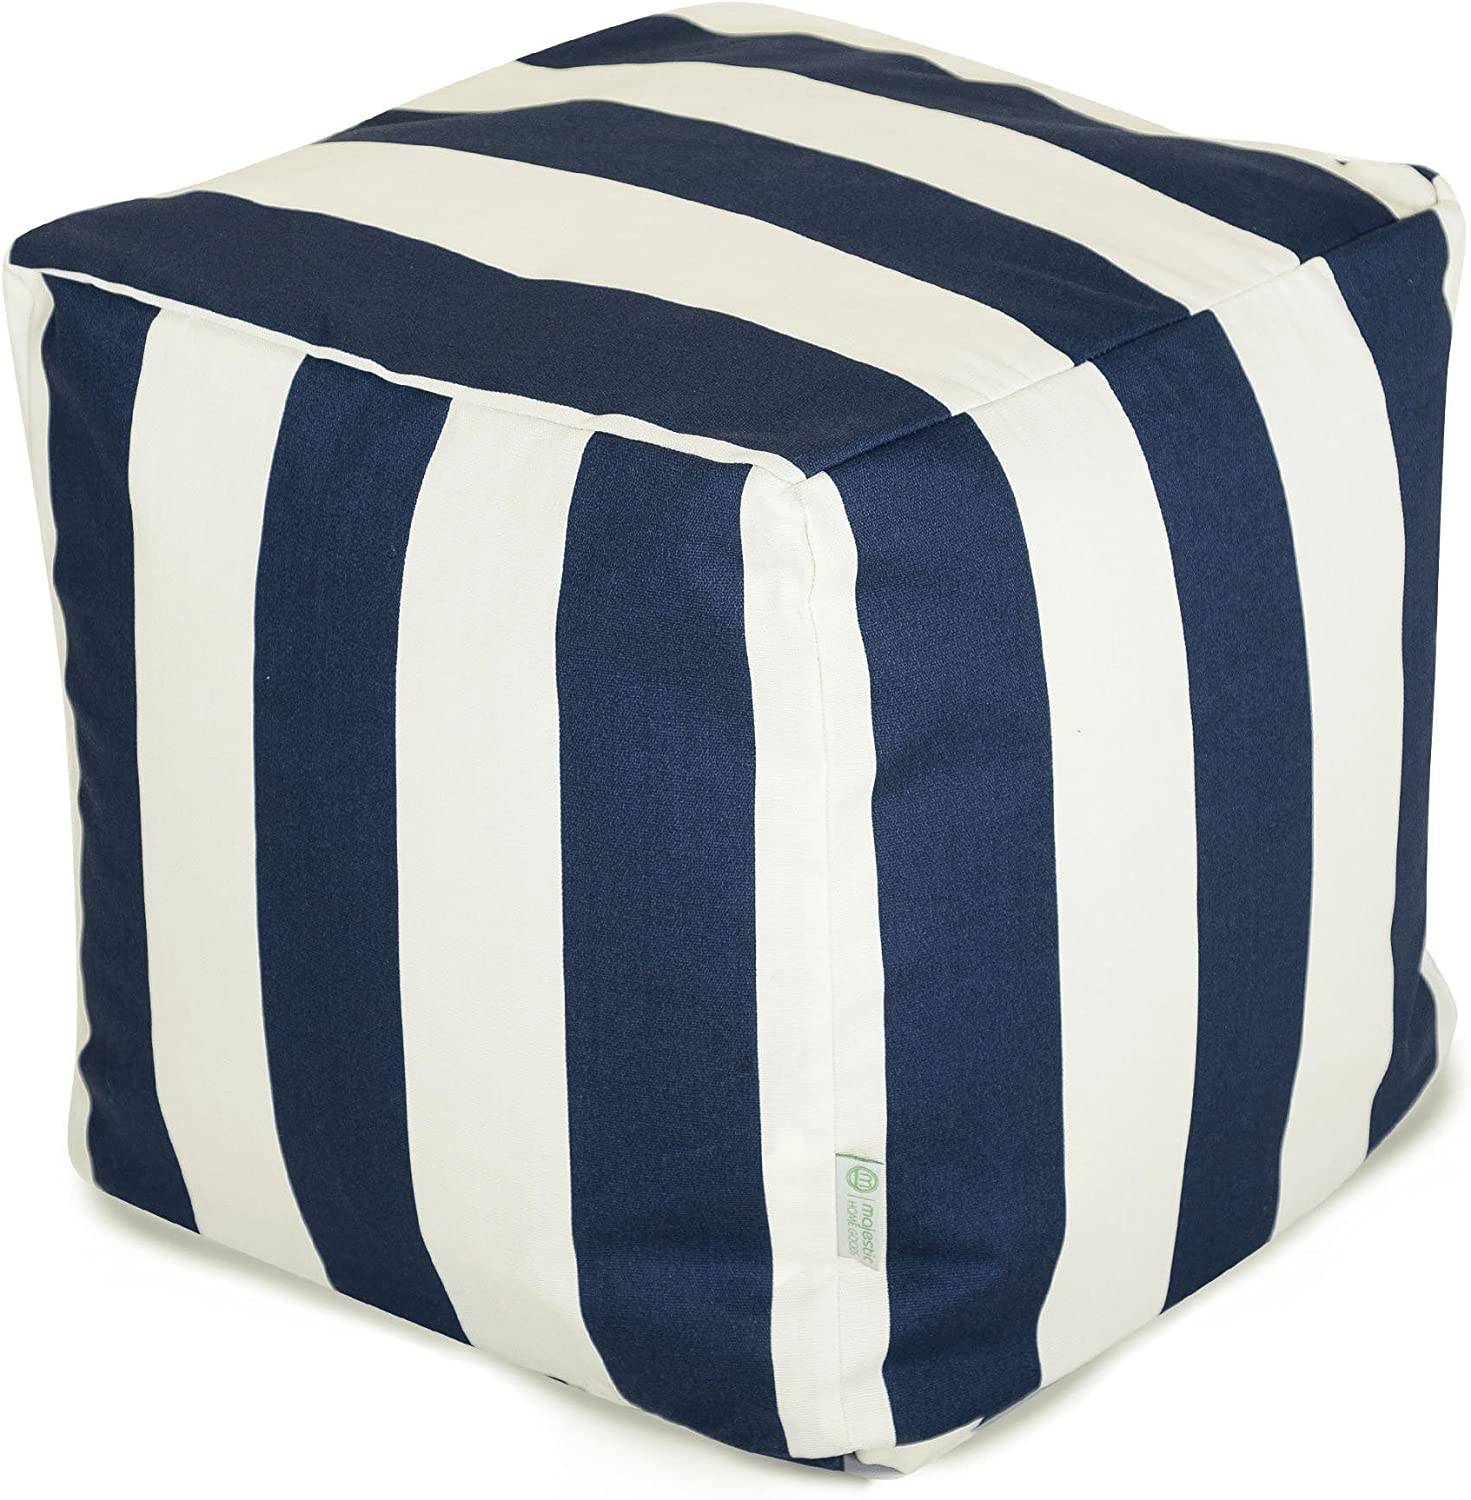 Majestic Home Goods Navy bluee greenical Stripe Small Cube